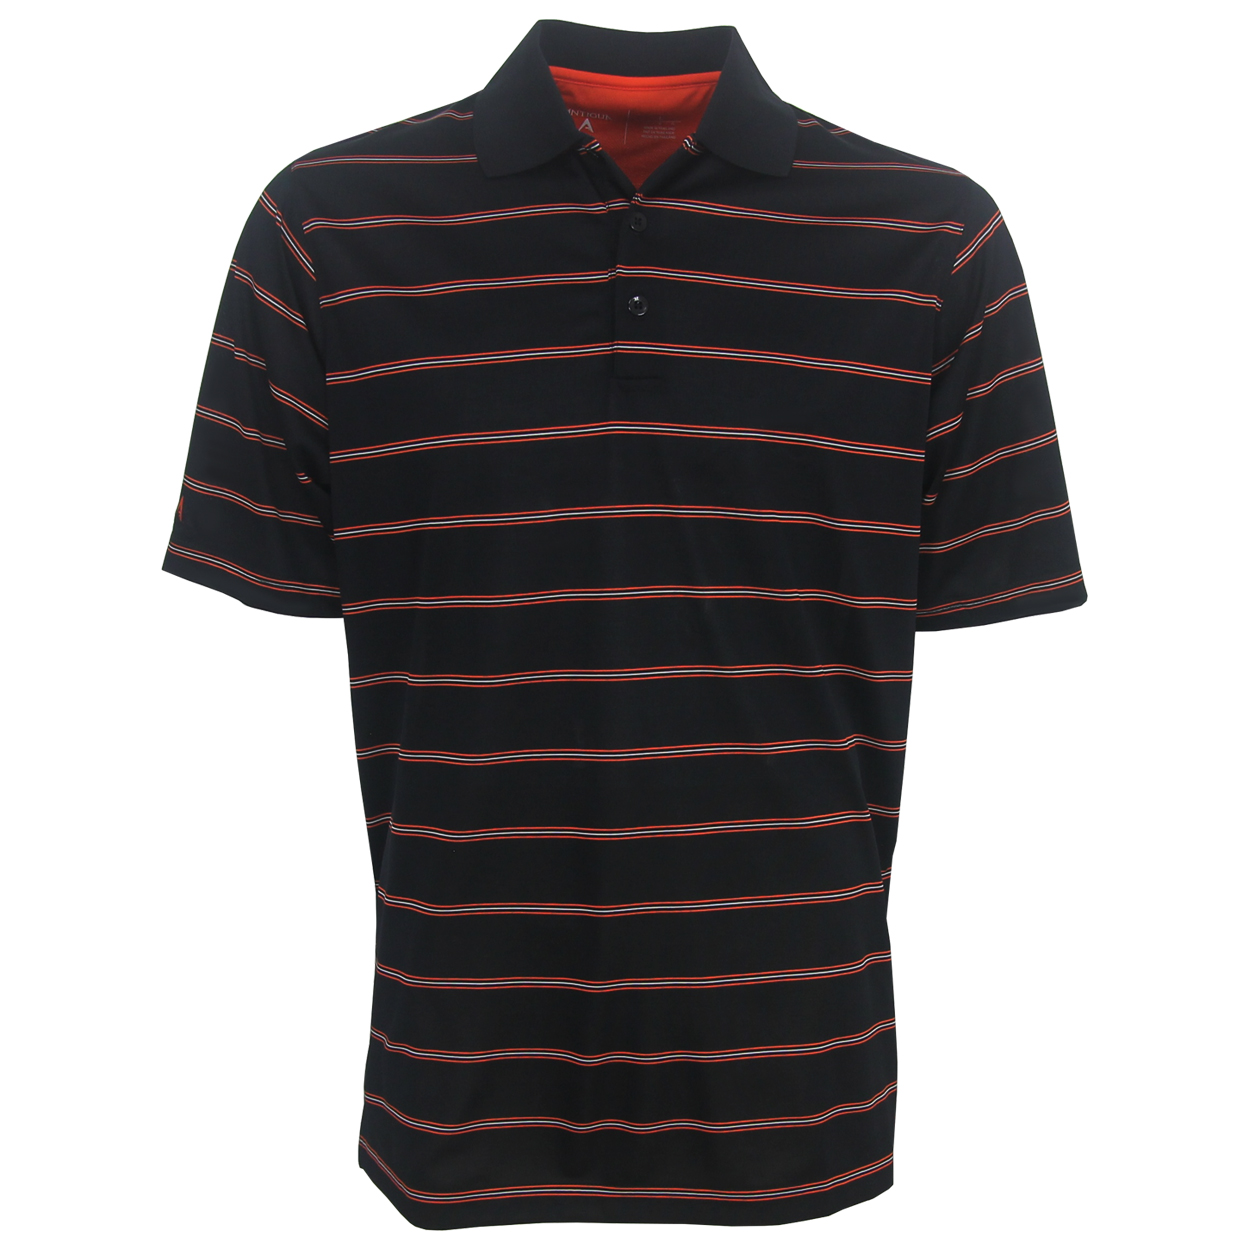 Antigua Deluxe Performance Striped Polo Golf Shirt